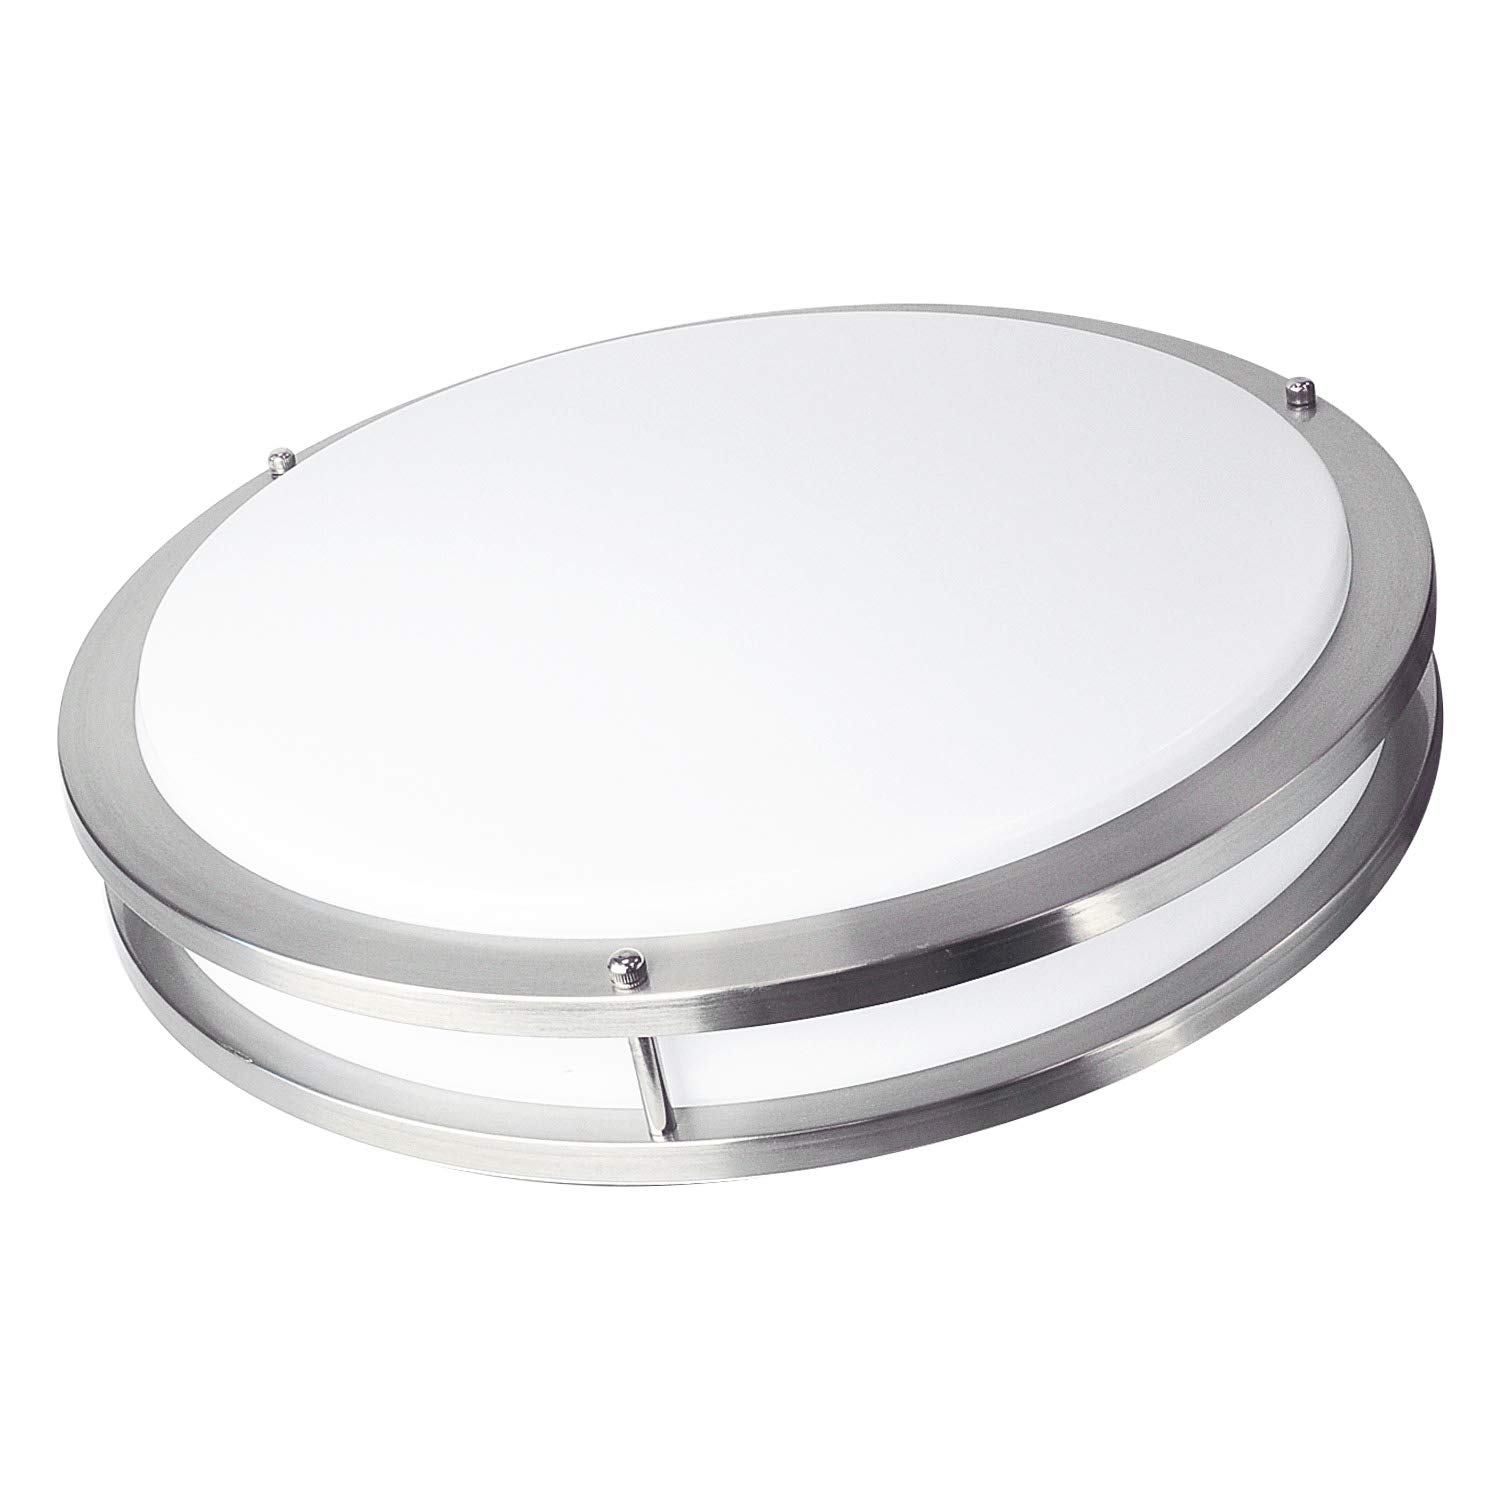 OSTWIN 18'' Large Size LED Ceiling Light Fixture Flush Mount, Dimmable, Round 28 Watt (180W Repl.) 5000K Daylight, 1960 Lm, Nickel Finish with Acrylic Shade ETL and Energy Star Listed